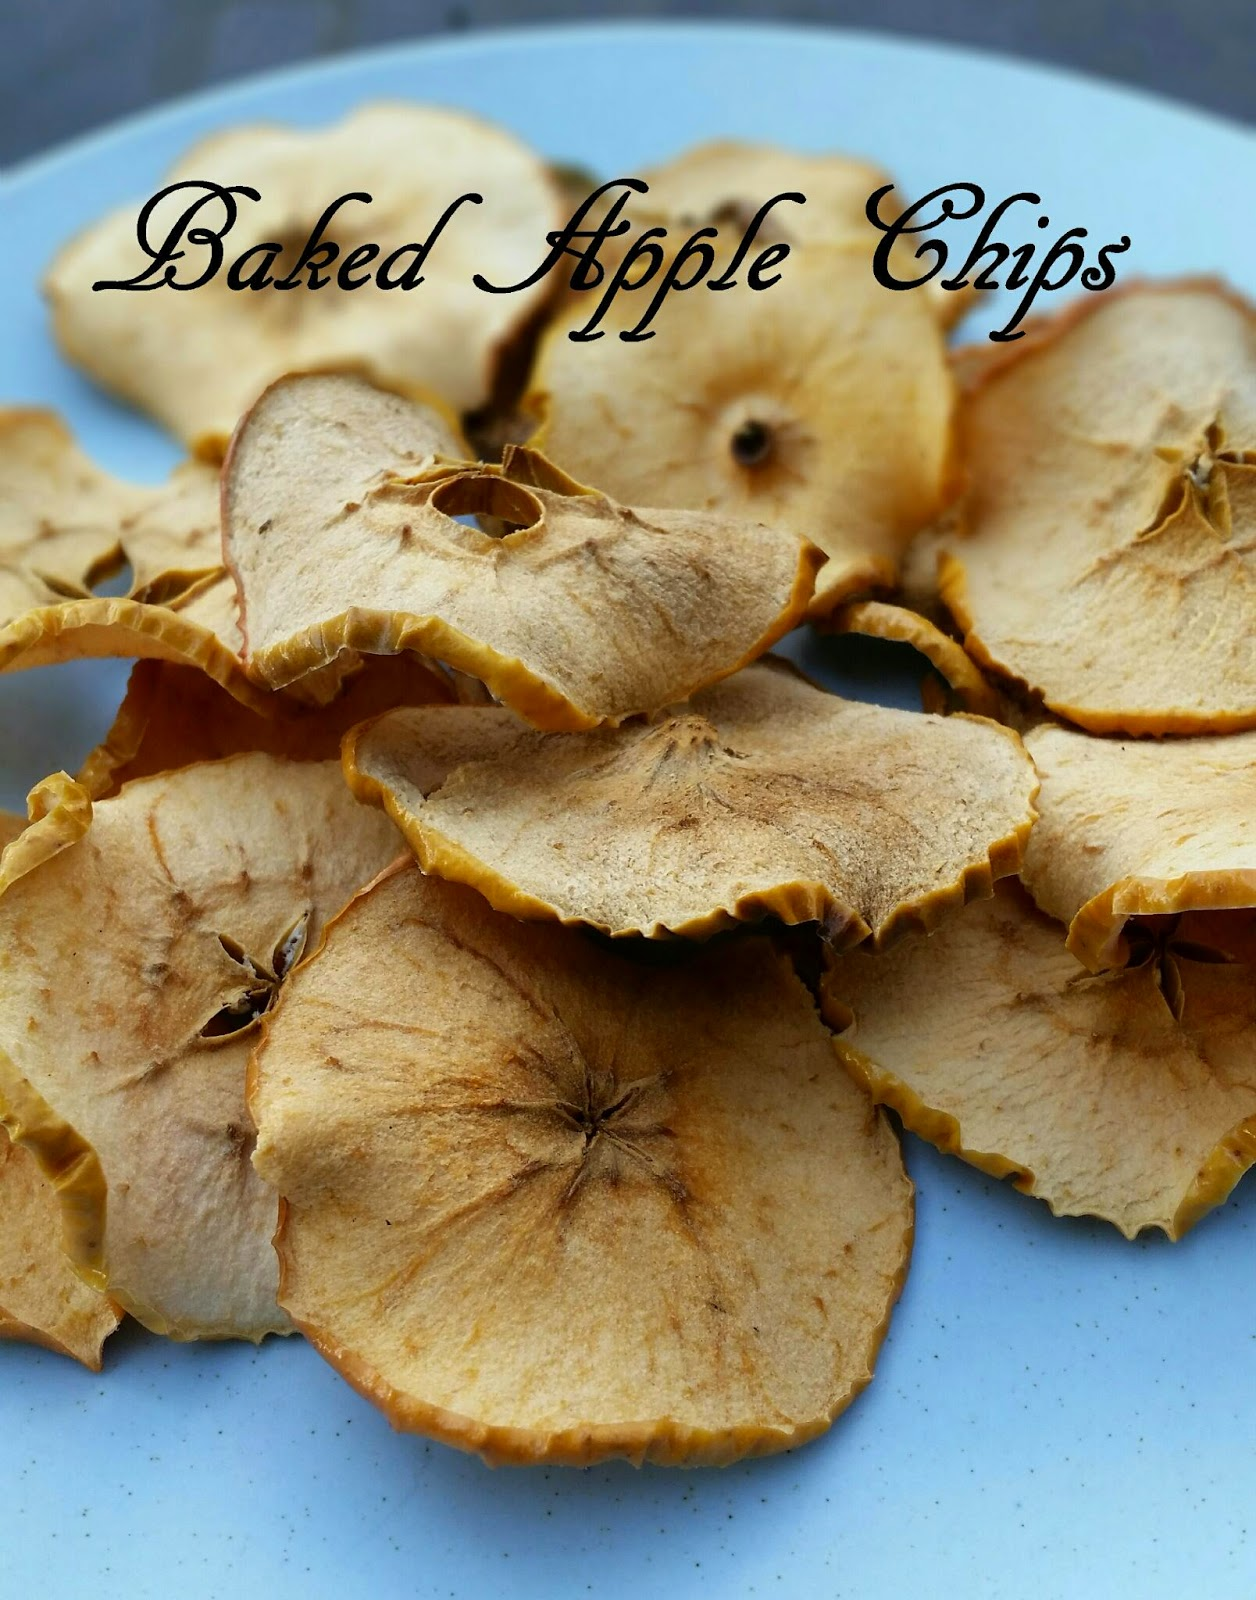 Recipe Wednesday – Baked Apple Chips